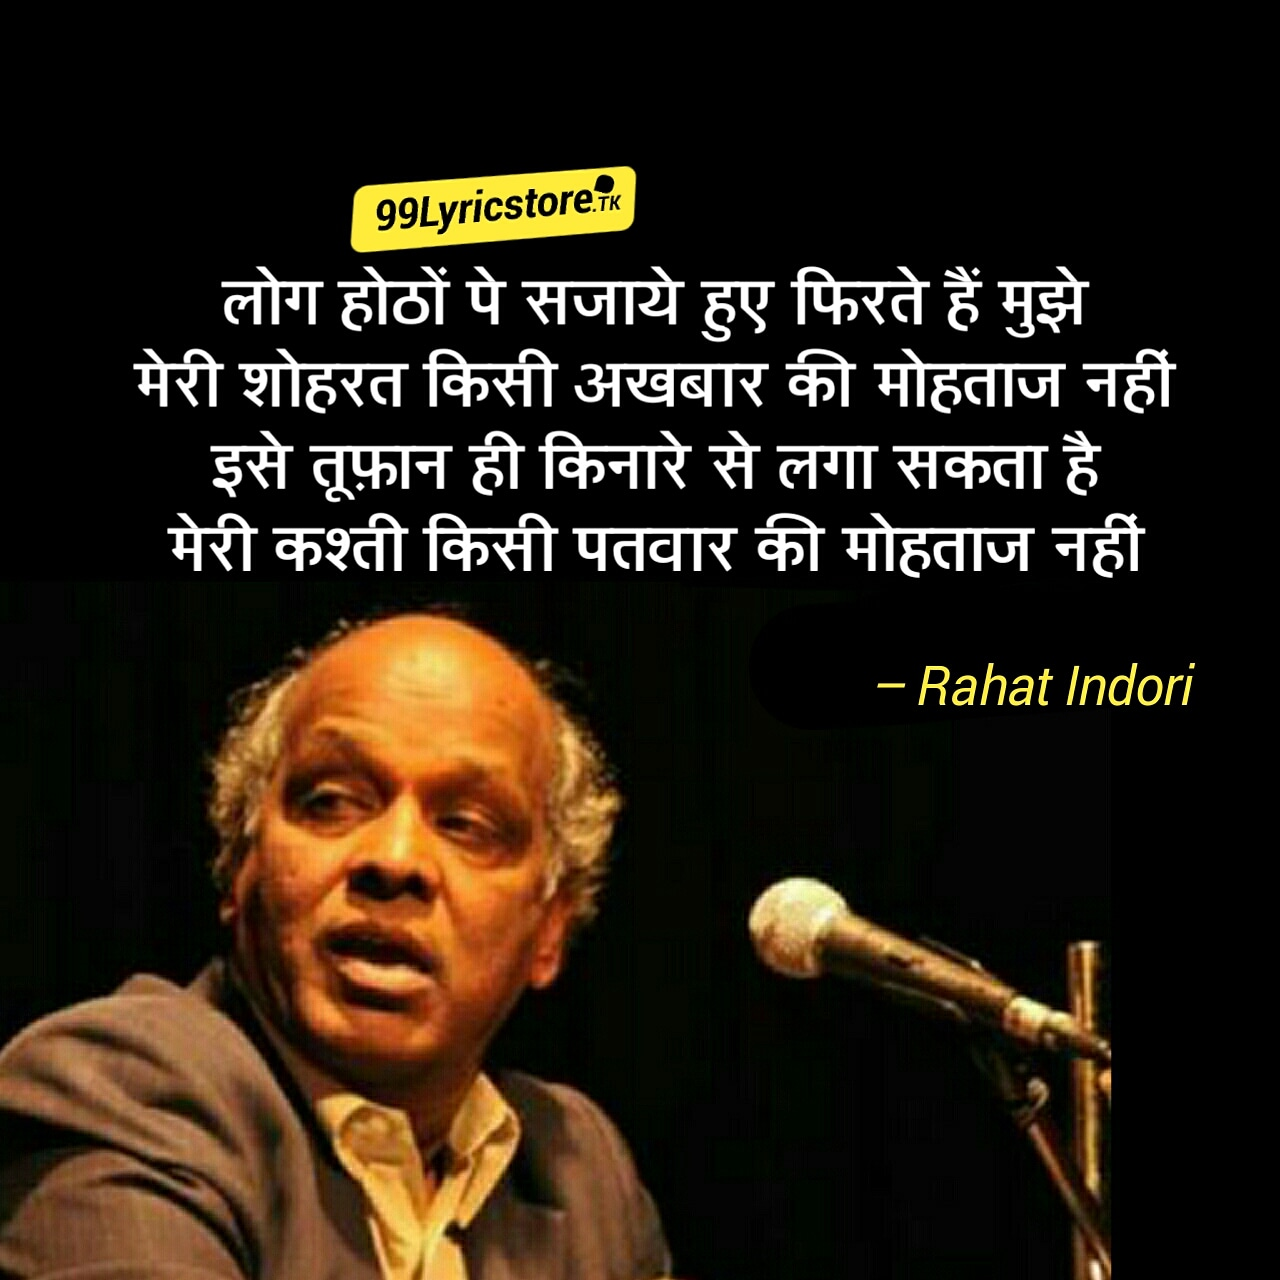 'Tere Waade Tere Pyar Ki Mohtaaz Nahin' written and performed by Rahat Indori. This poetry is best Ghazal and Shayari of Rahat Indori.